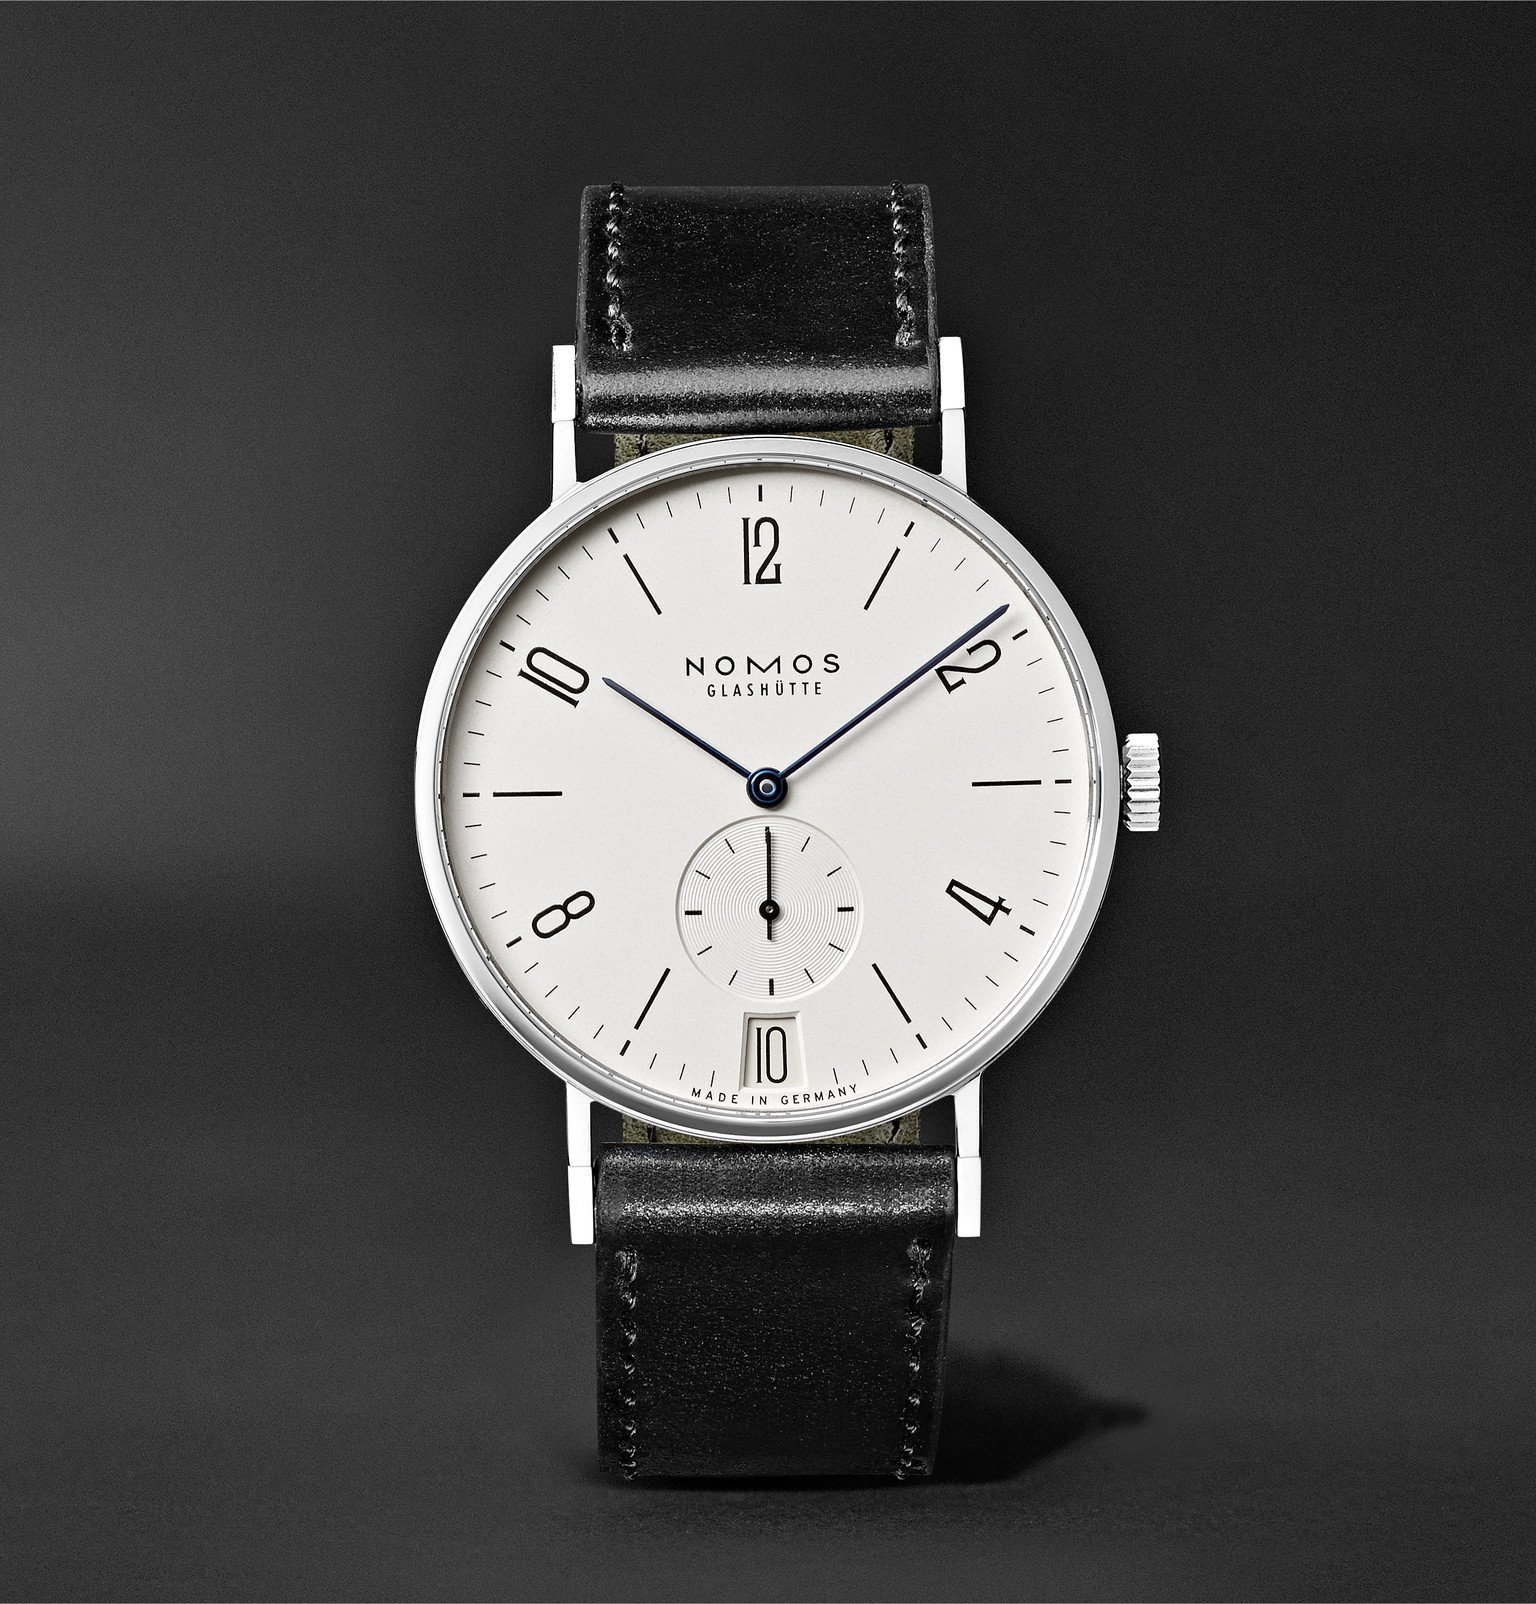 Photo: NOMOS Glashütte - Tangente 38mm Datum Stainless Steel and Leather Watch, Ref. No. 130 - White